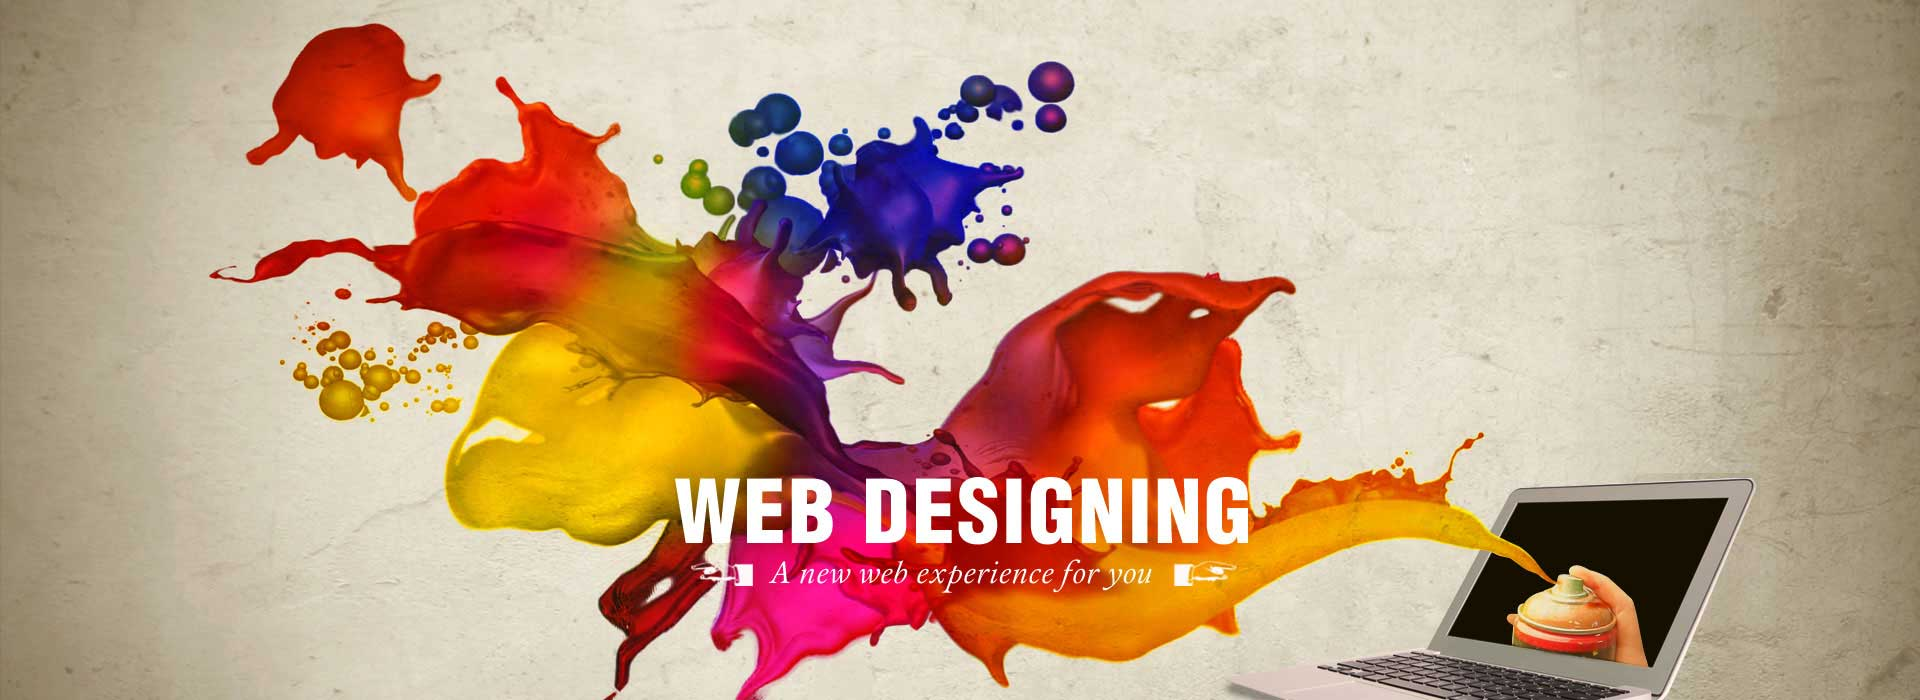 Web Design Trends You Must Know Before 2017